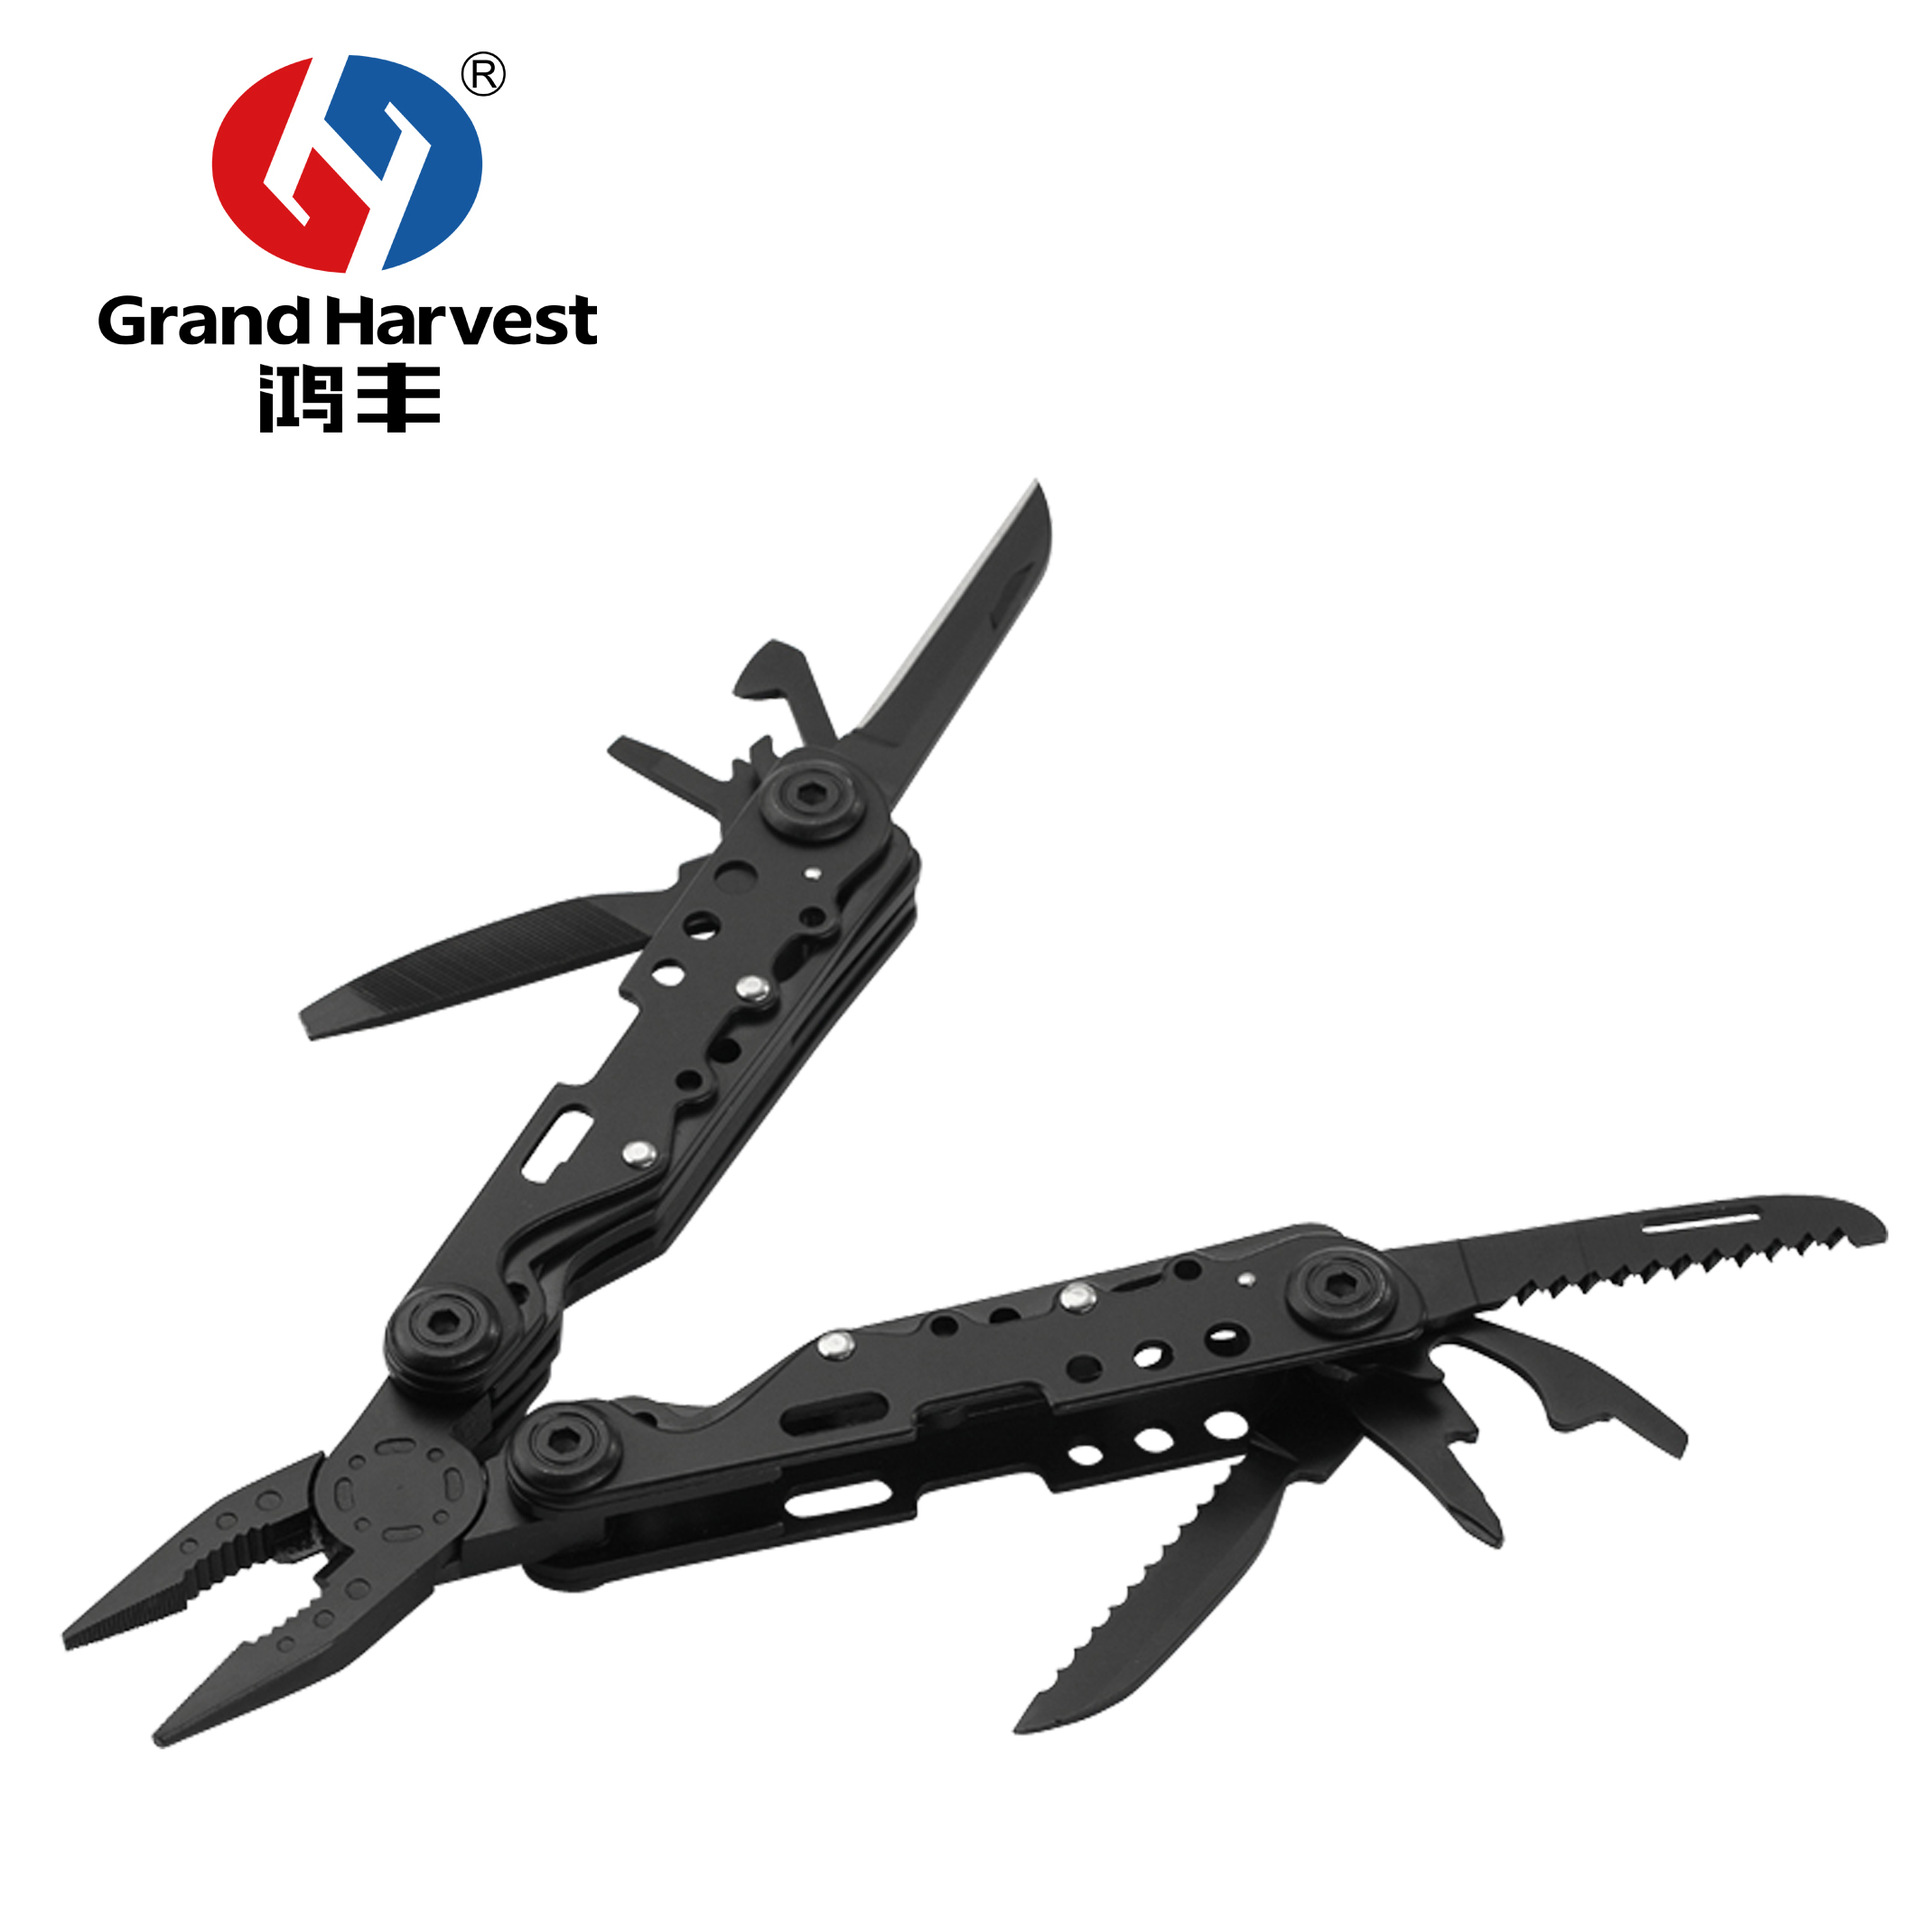 GHK-PL25 Outdoor Camping Hardware Multi-Purpose Tool Pliers Customizable Stainless Steel Folding Knife Clamp